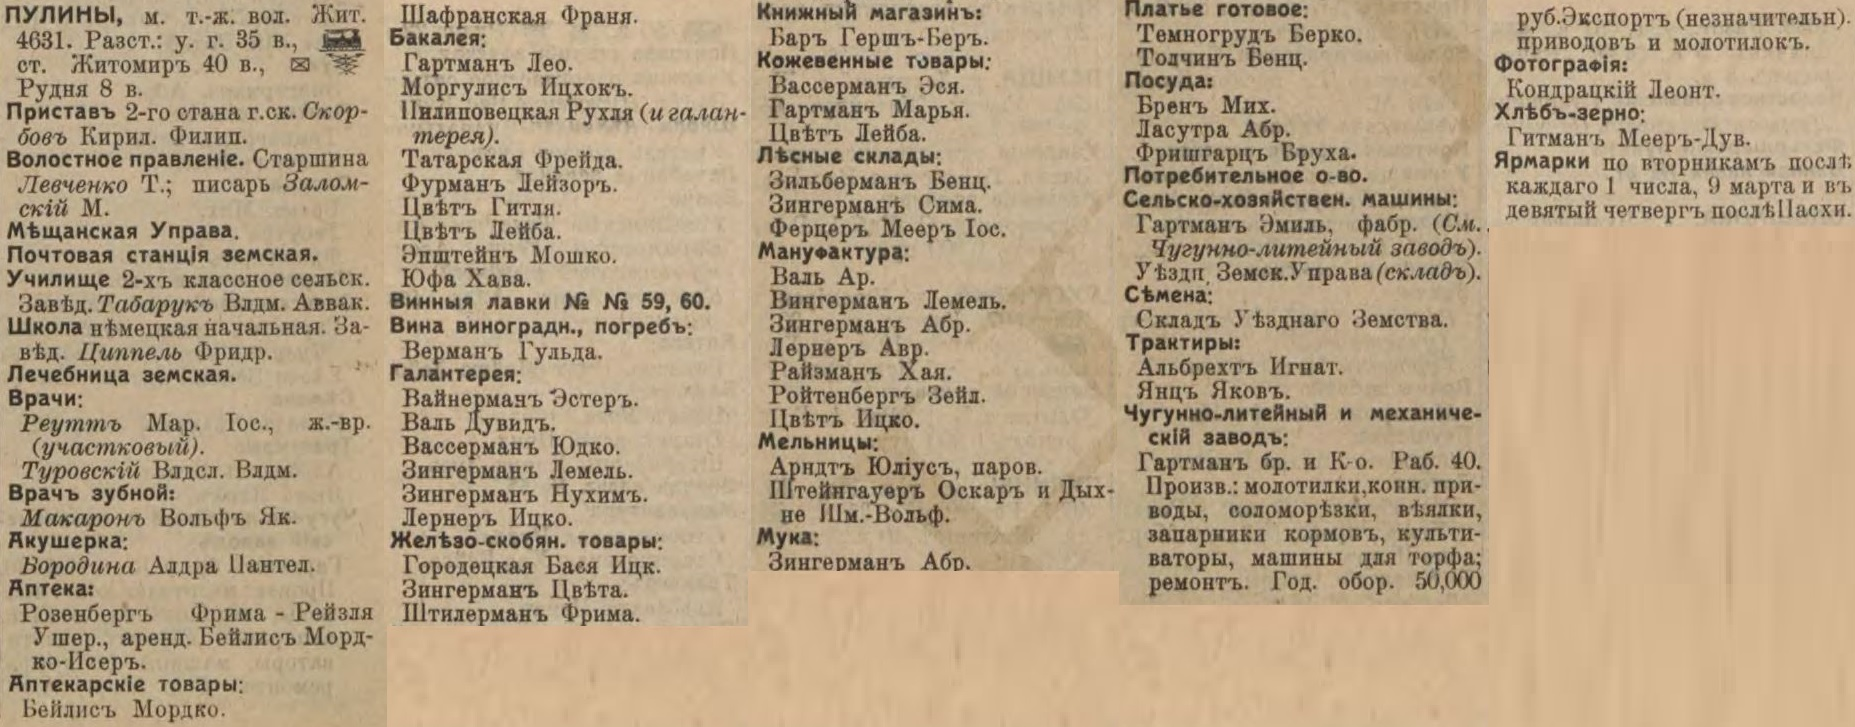 Puliny entrepreneurs list from Russian Empire Business Directories by 1913